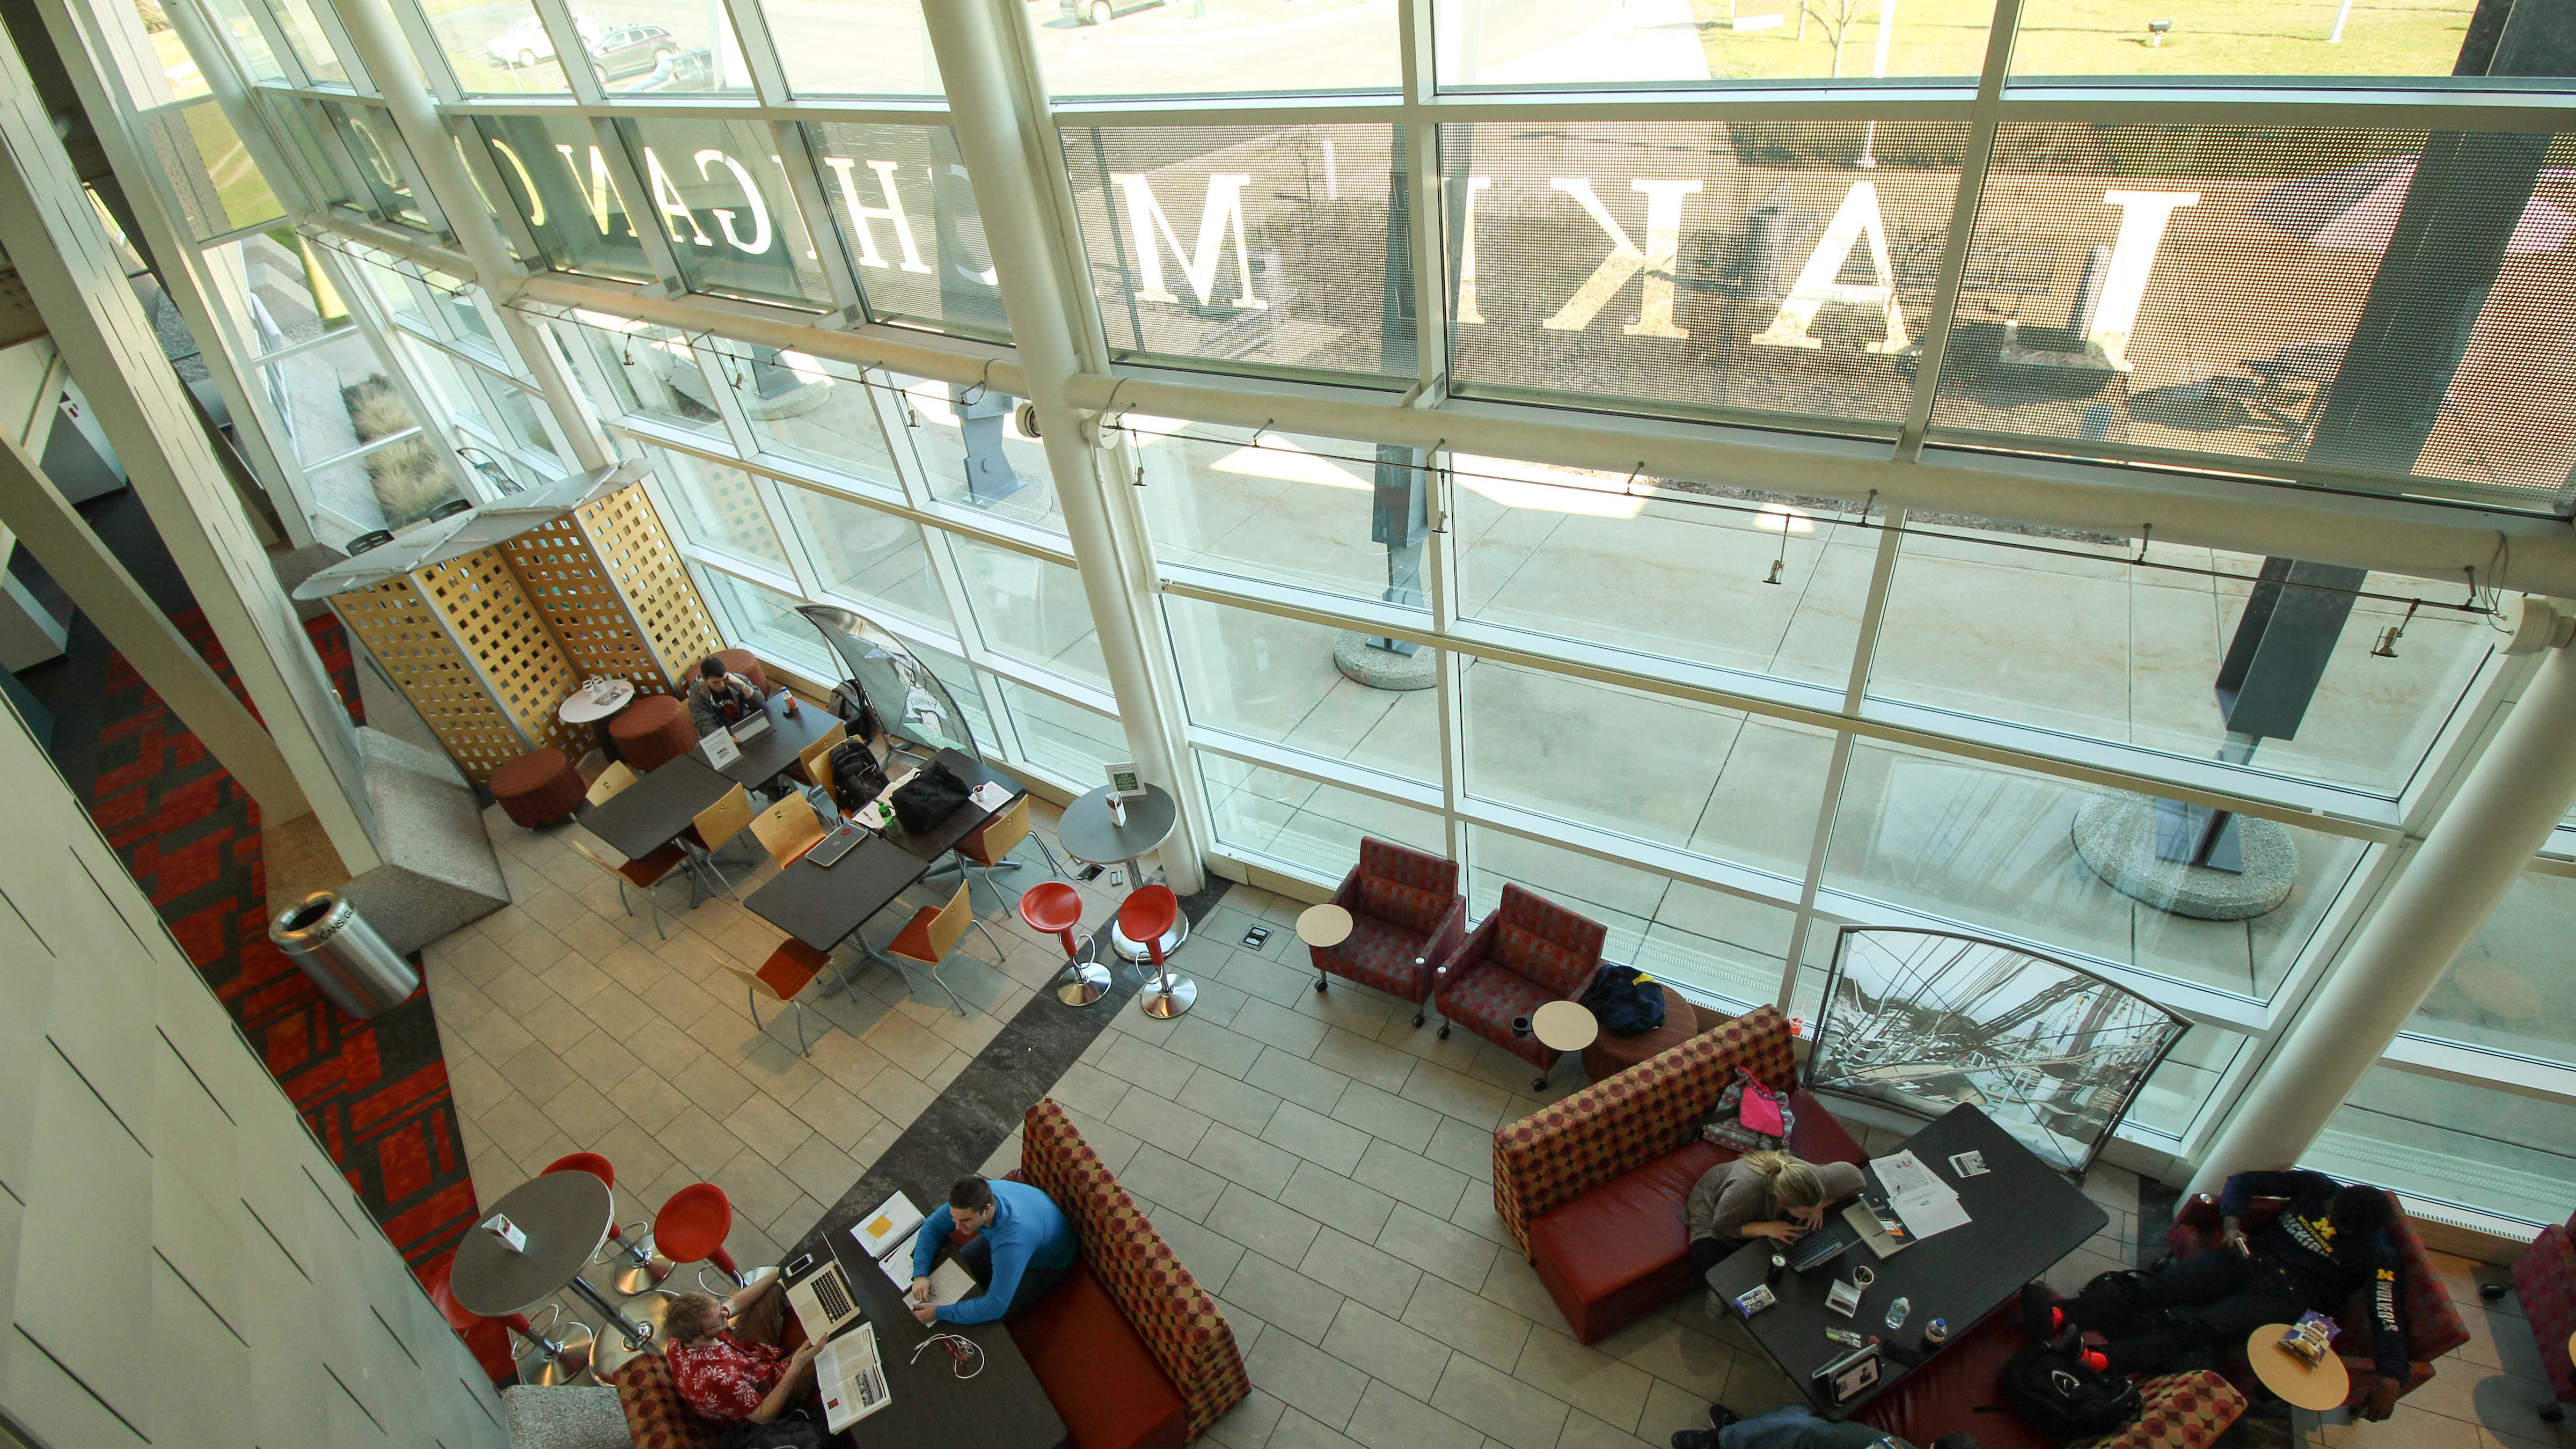 Inside the South Haven Campus lobby